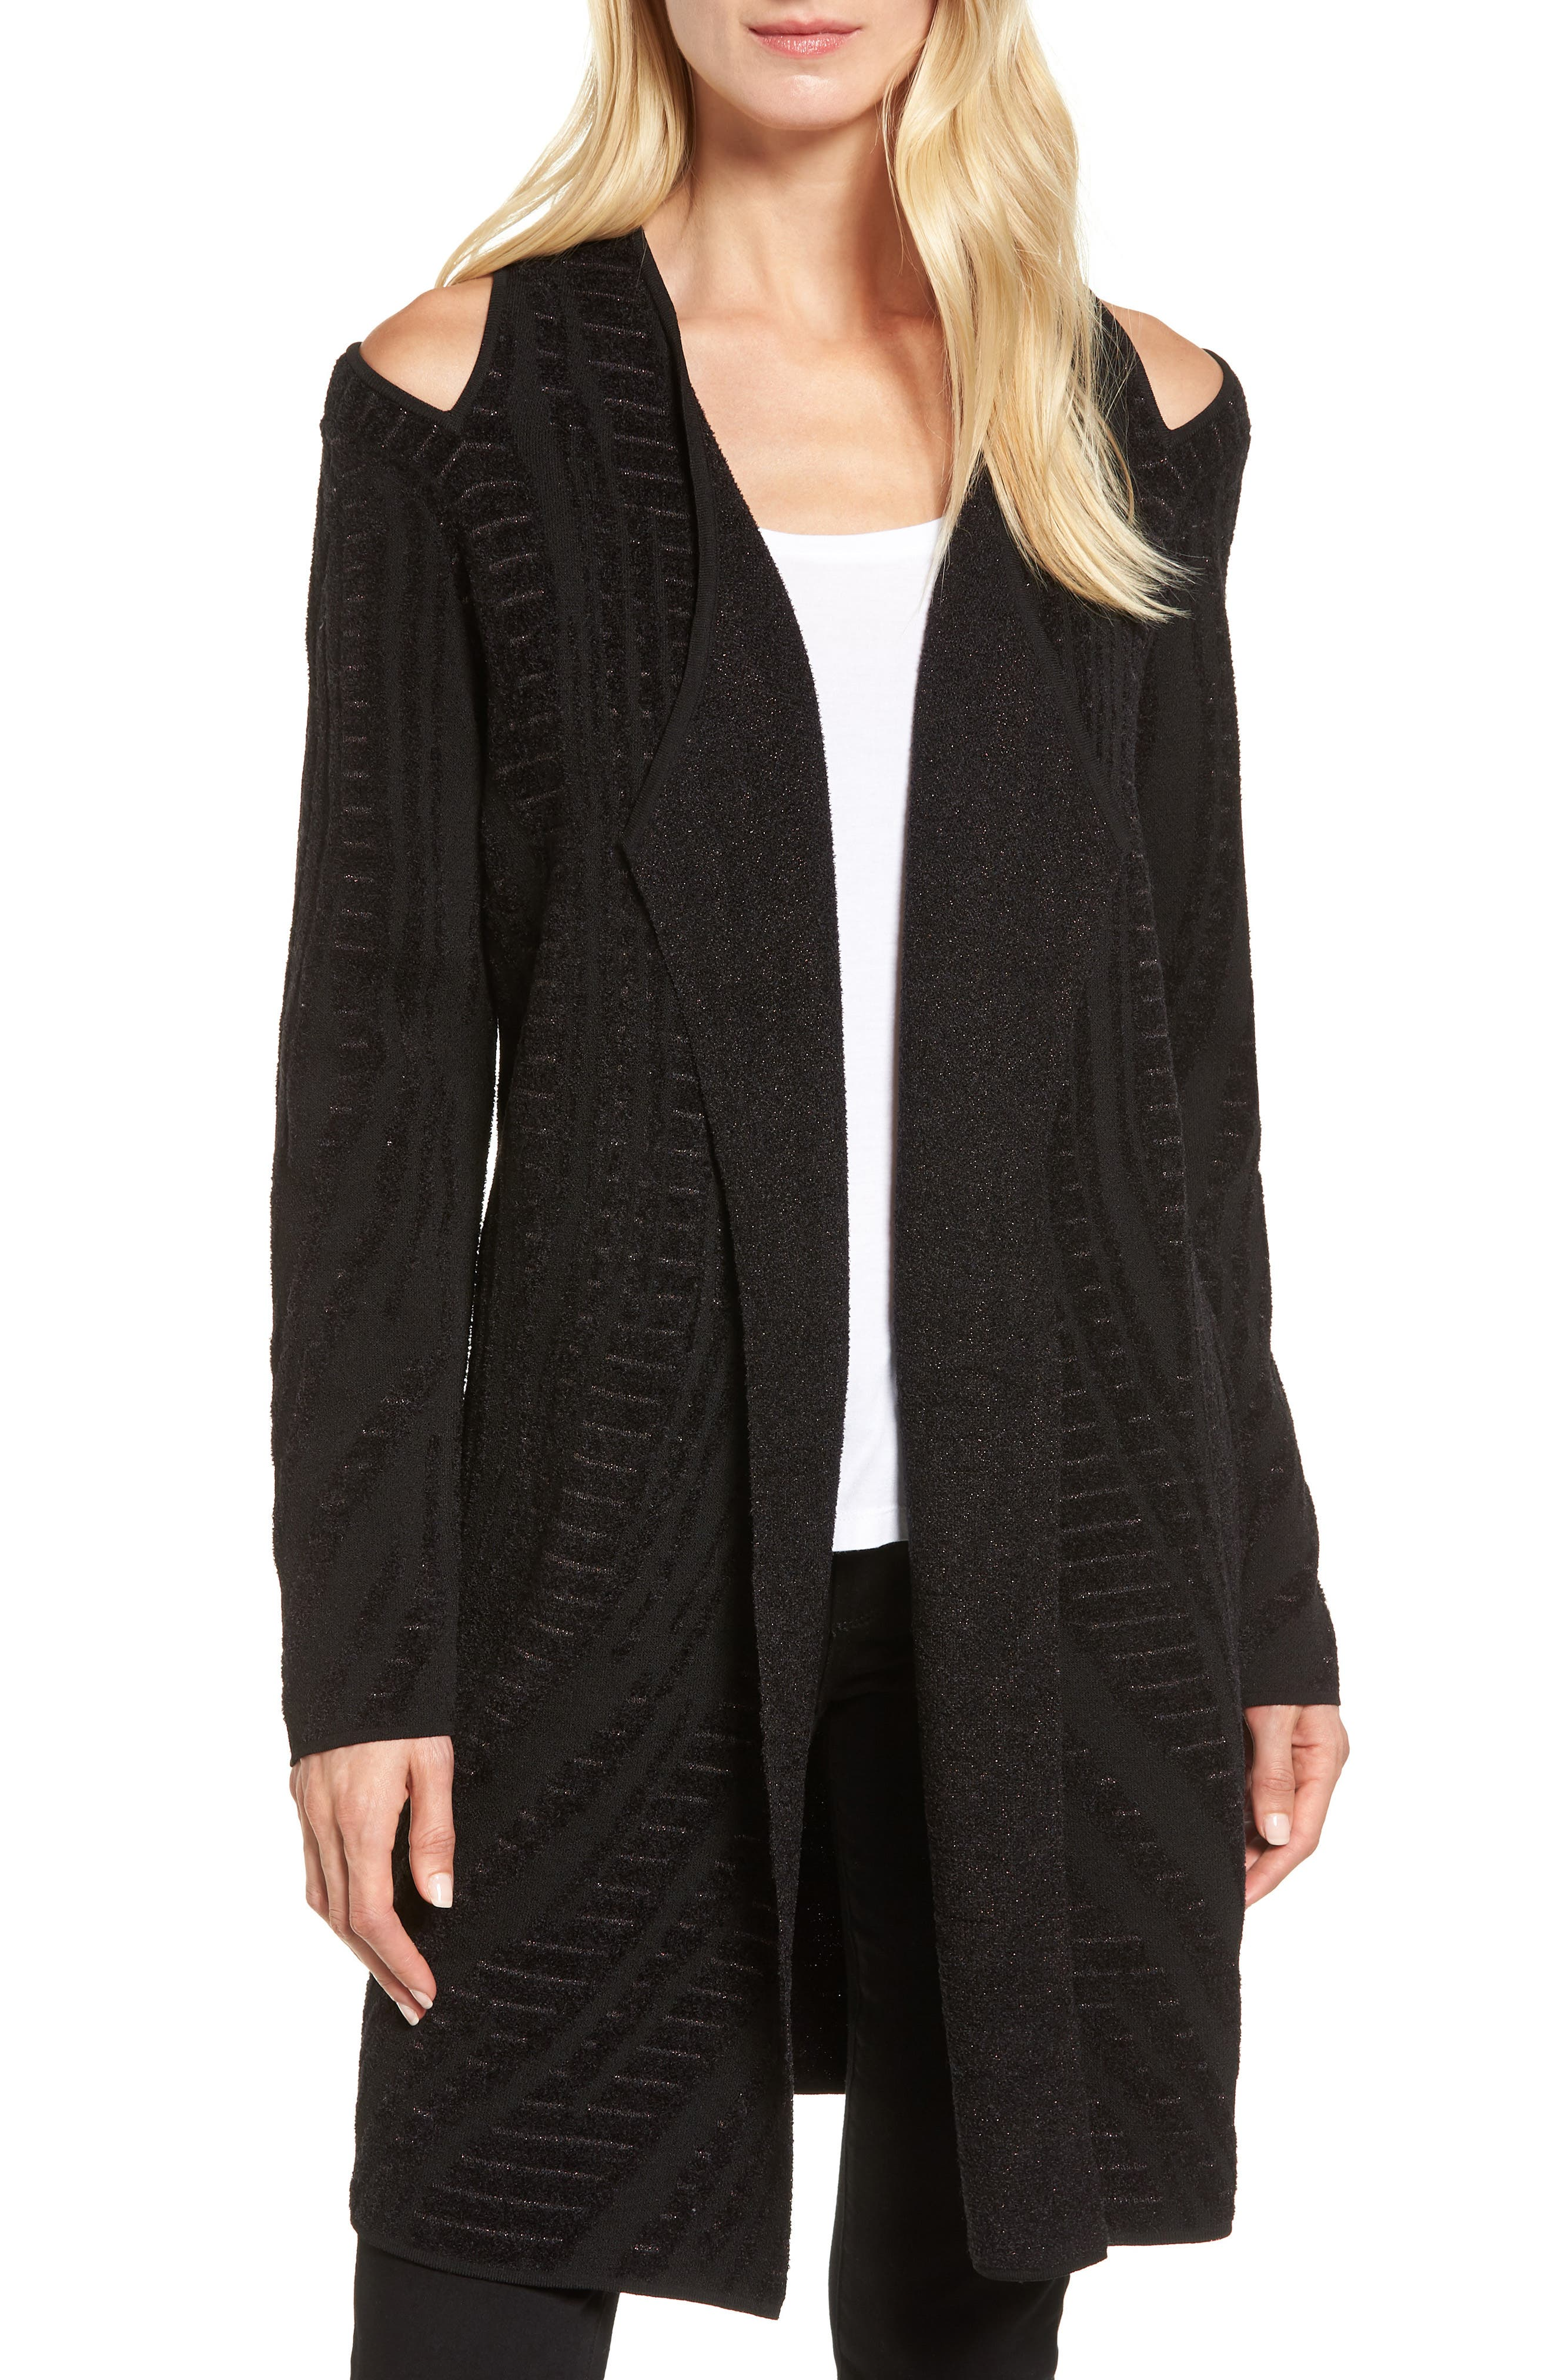 Main Image - NIC+ZOE Winter Reign Cold Shoulder Cardigan